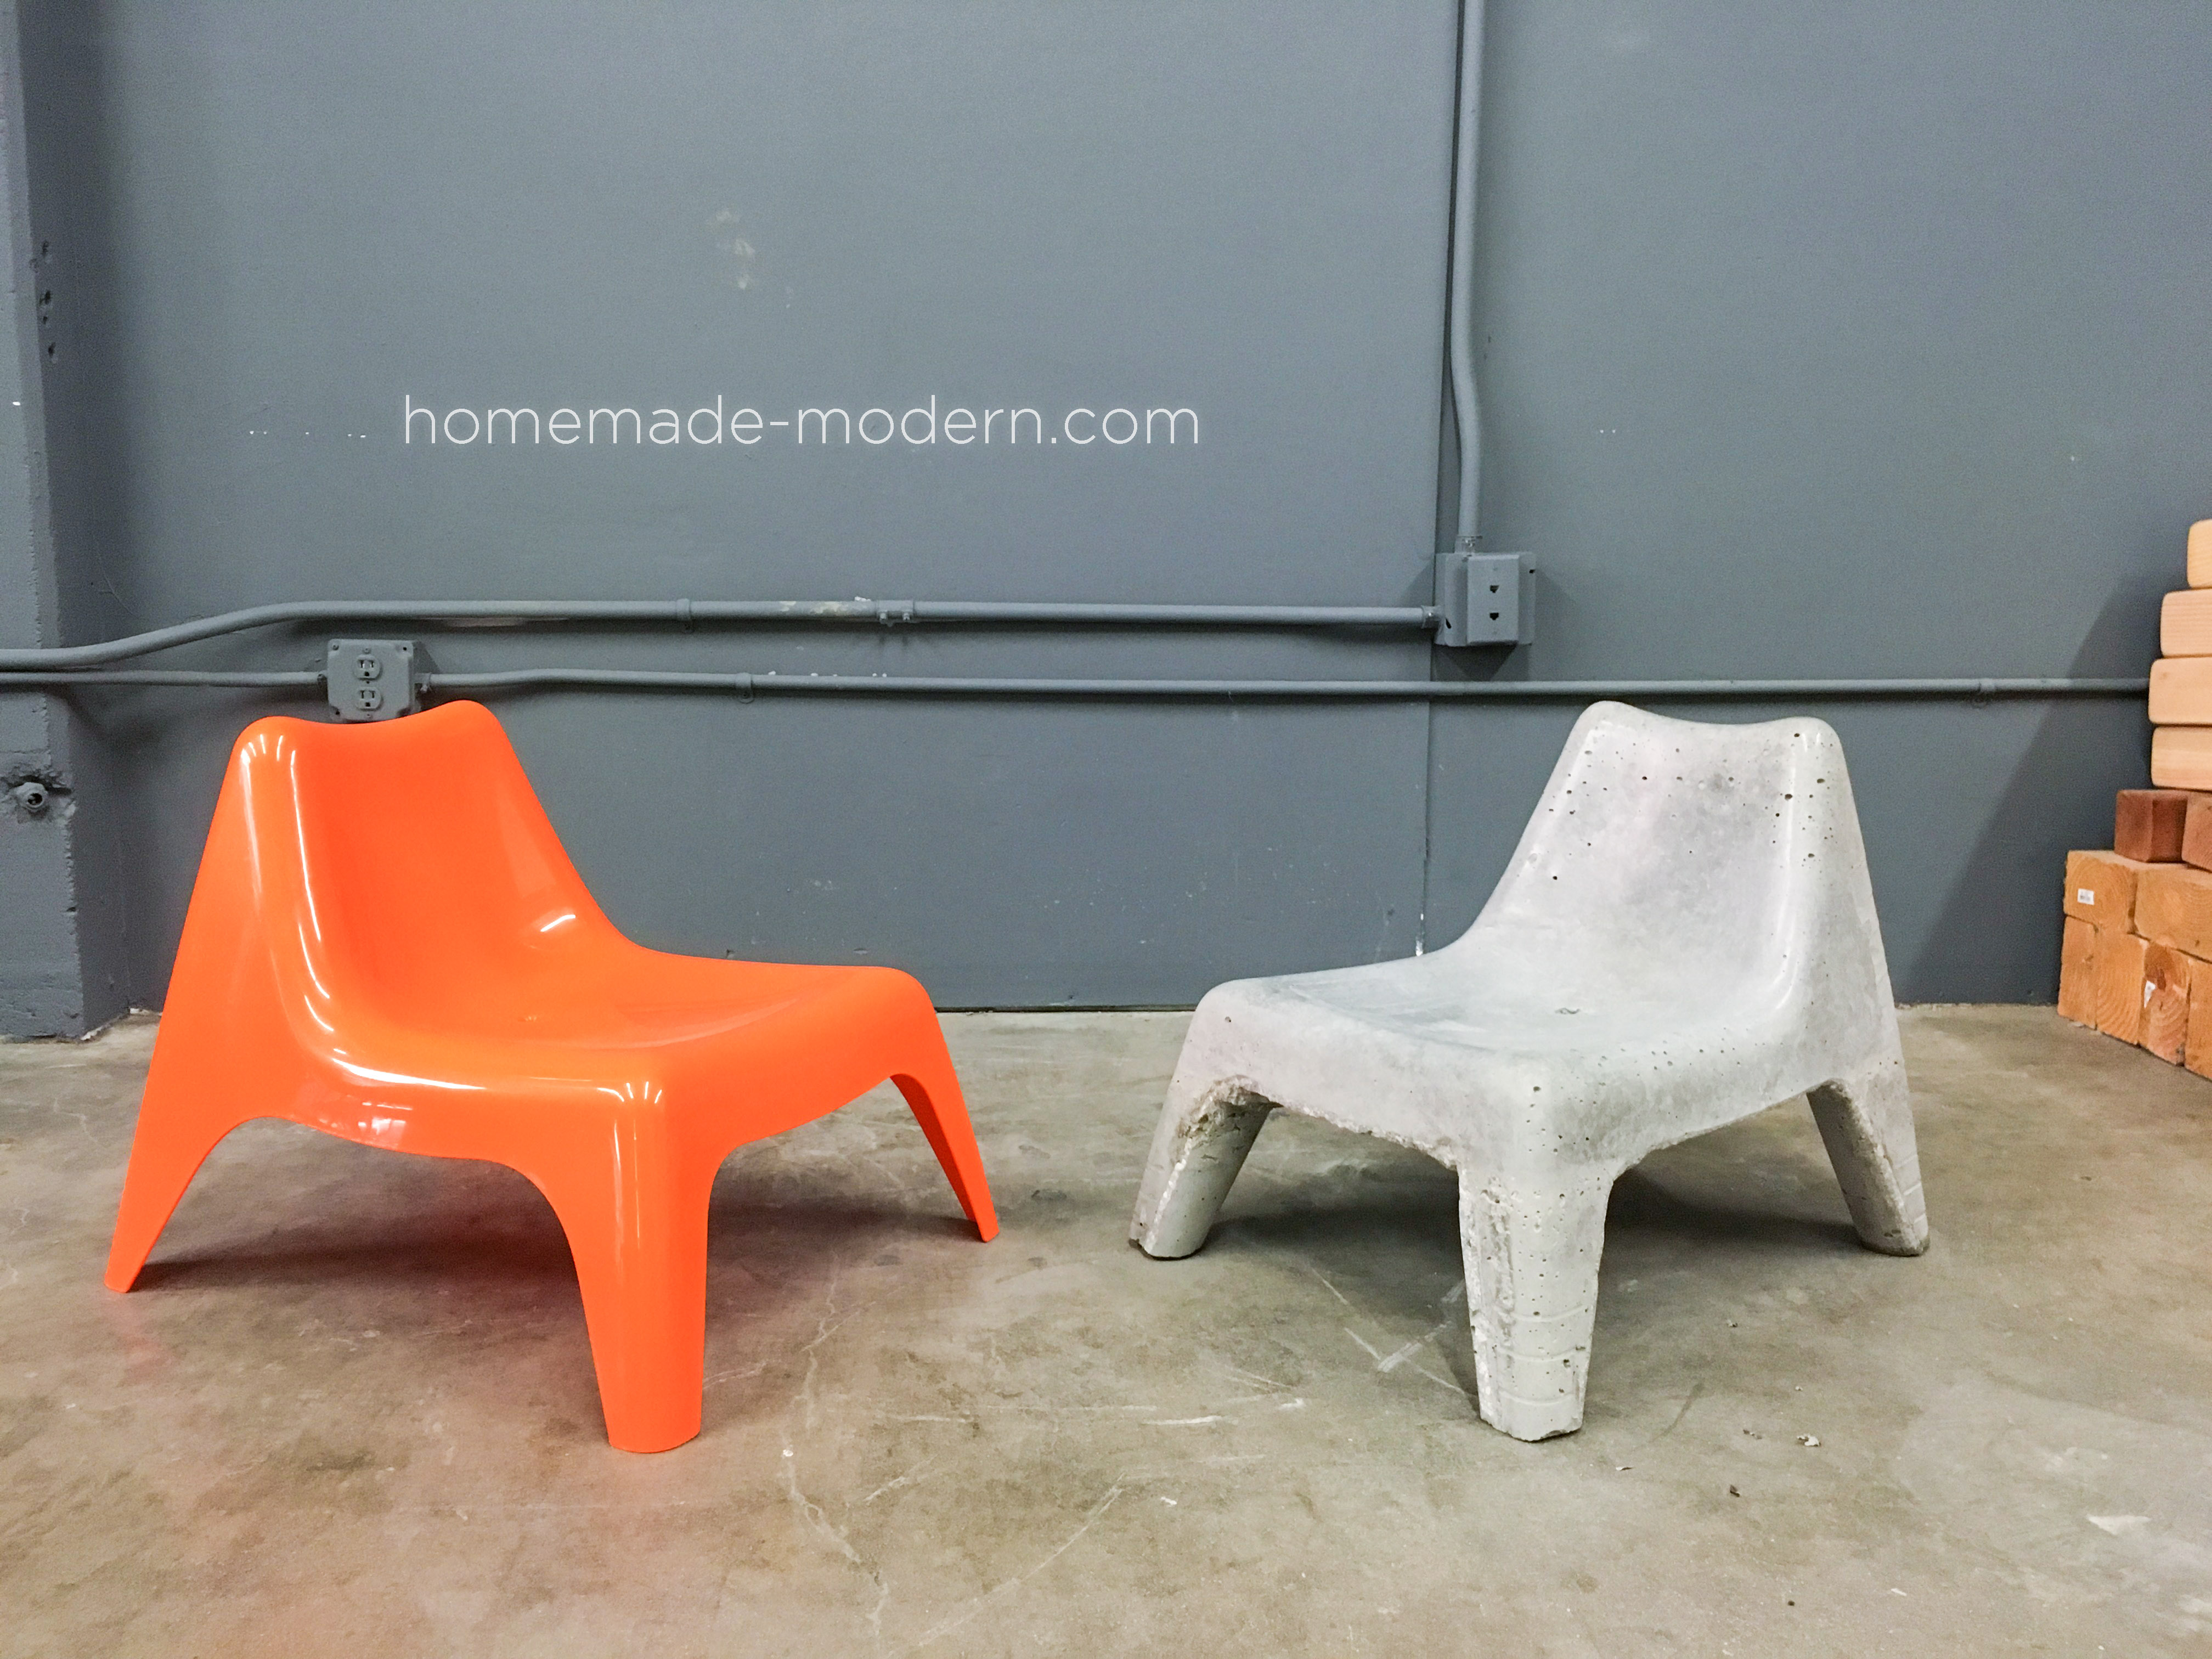 Homemade modern ep100 diy concrete chair What are chairs made of